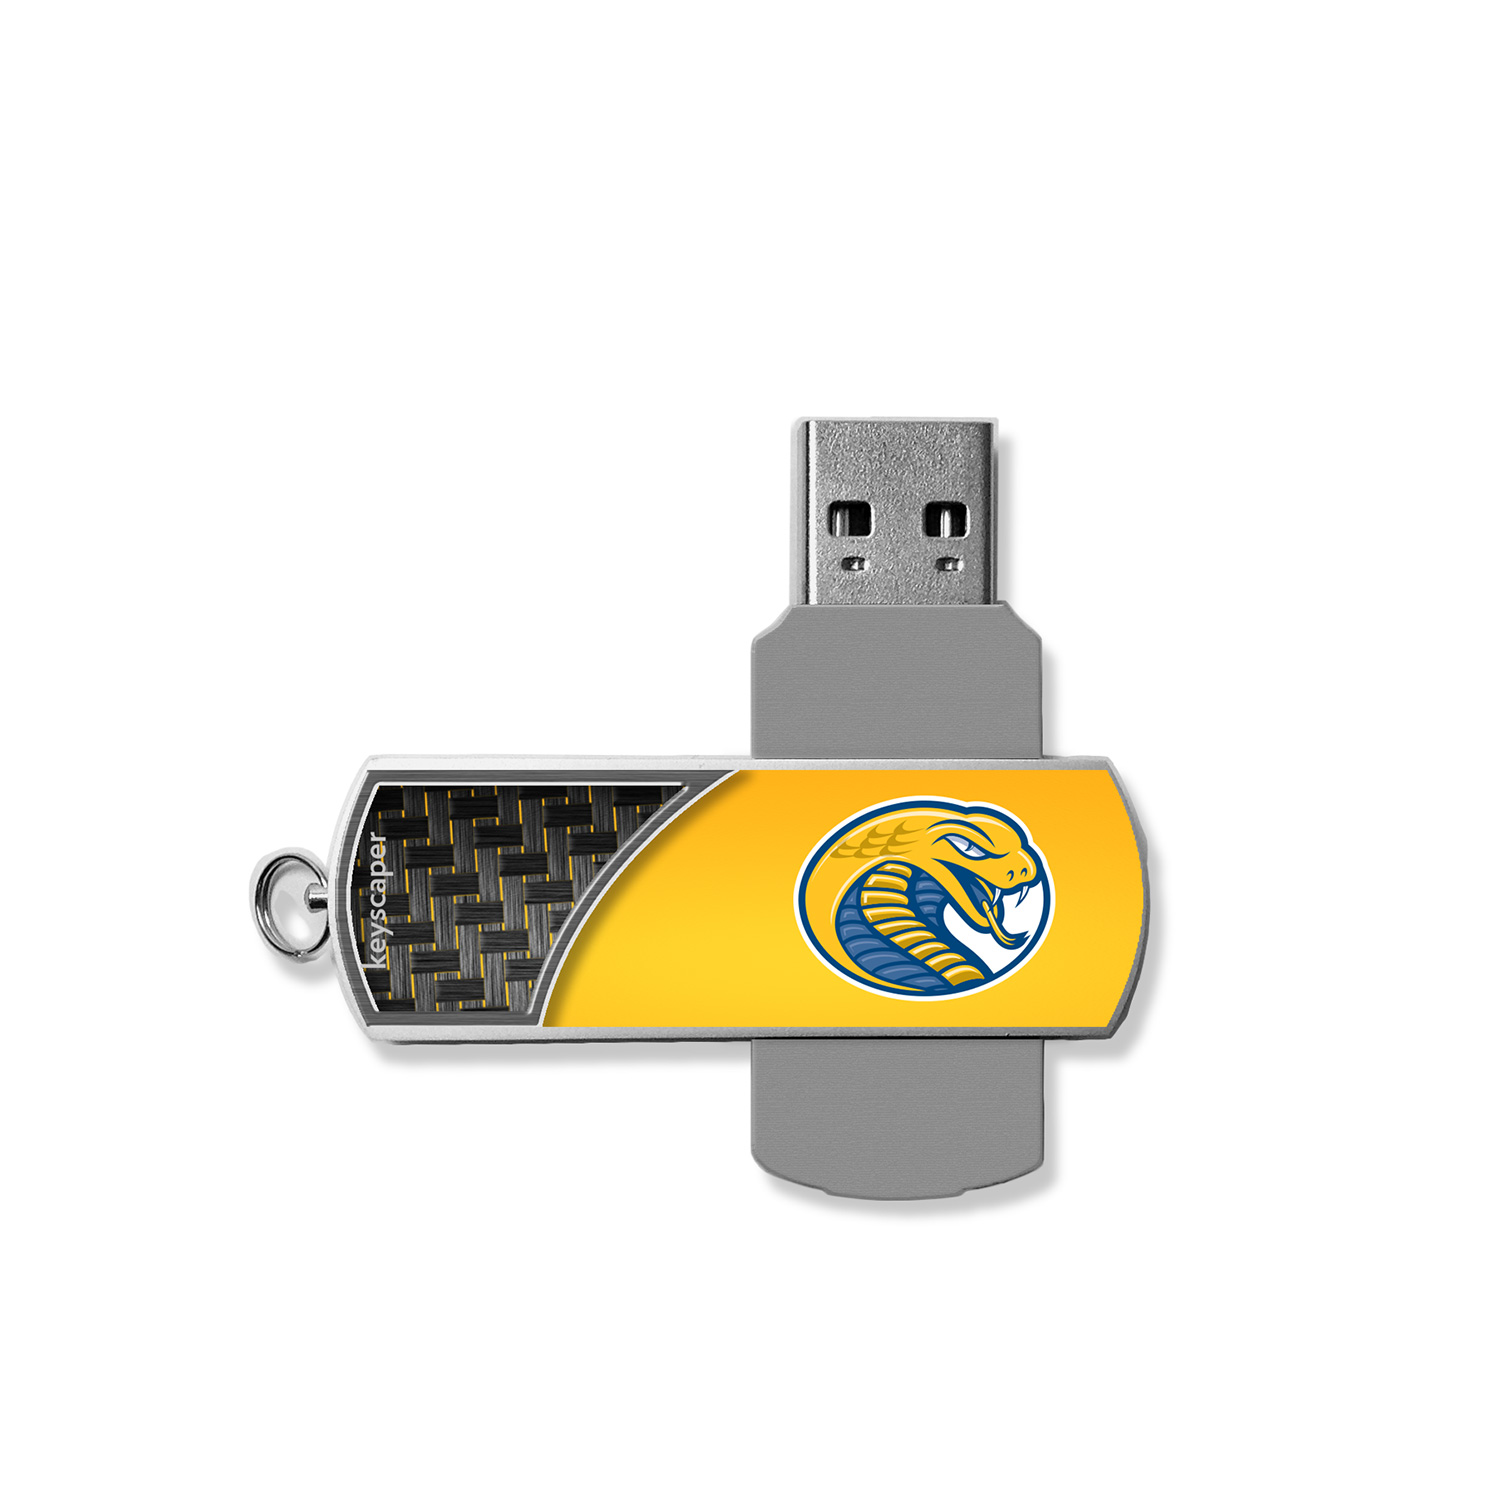 Image For Technology USB DRIVE COKER COLLEGE 16 GB